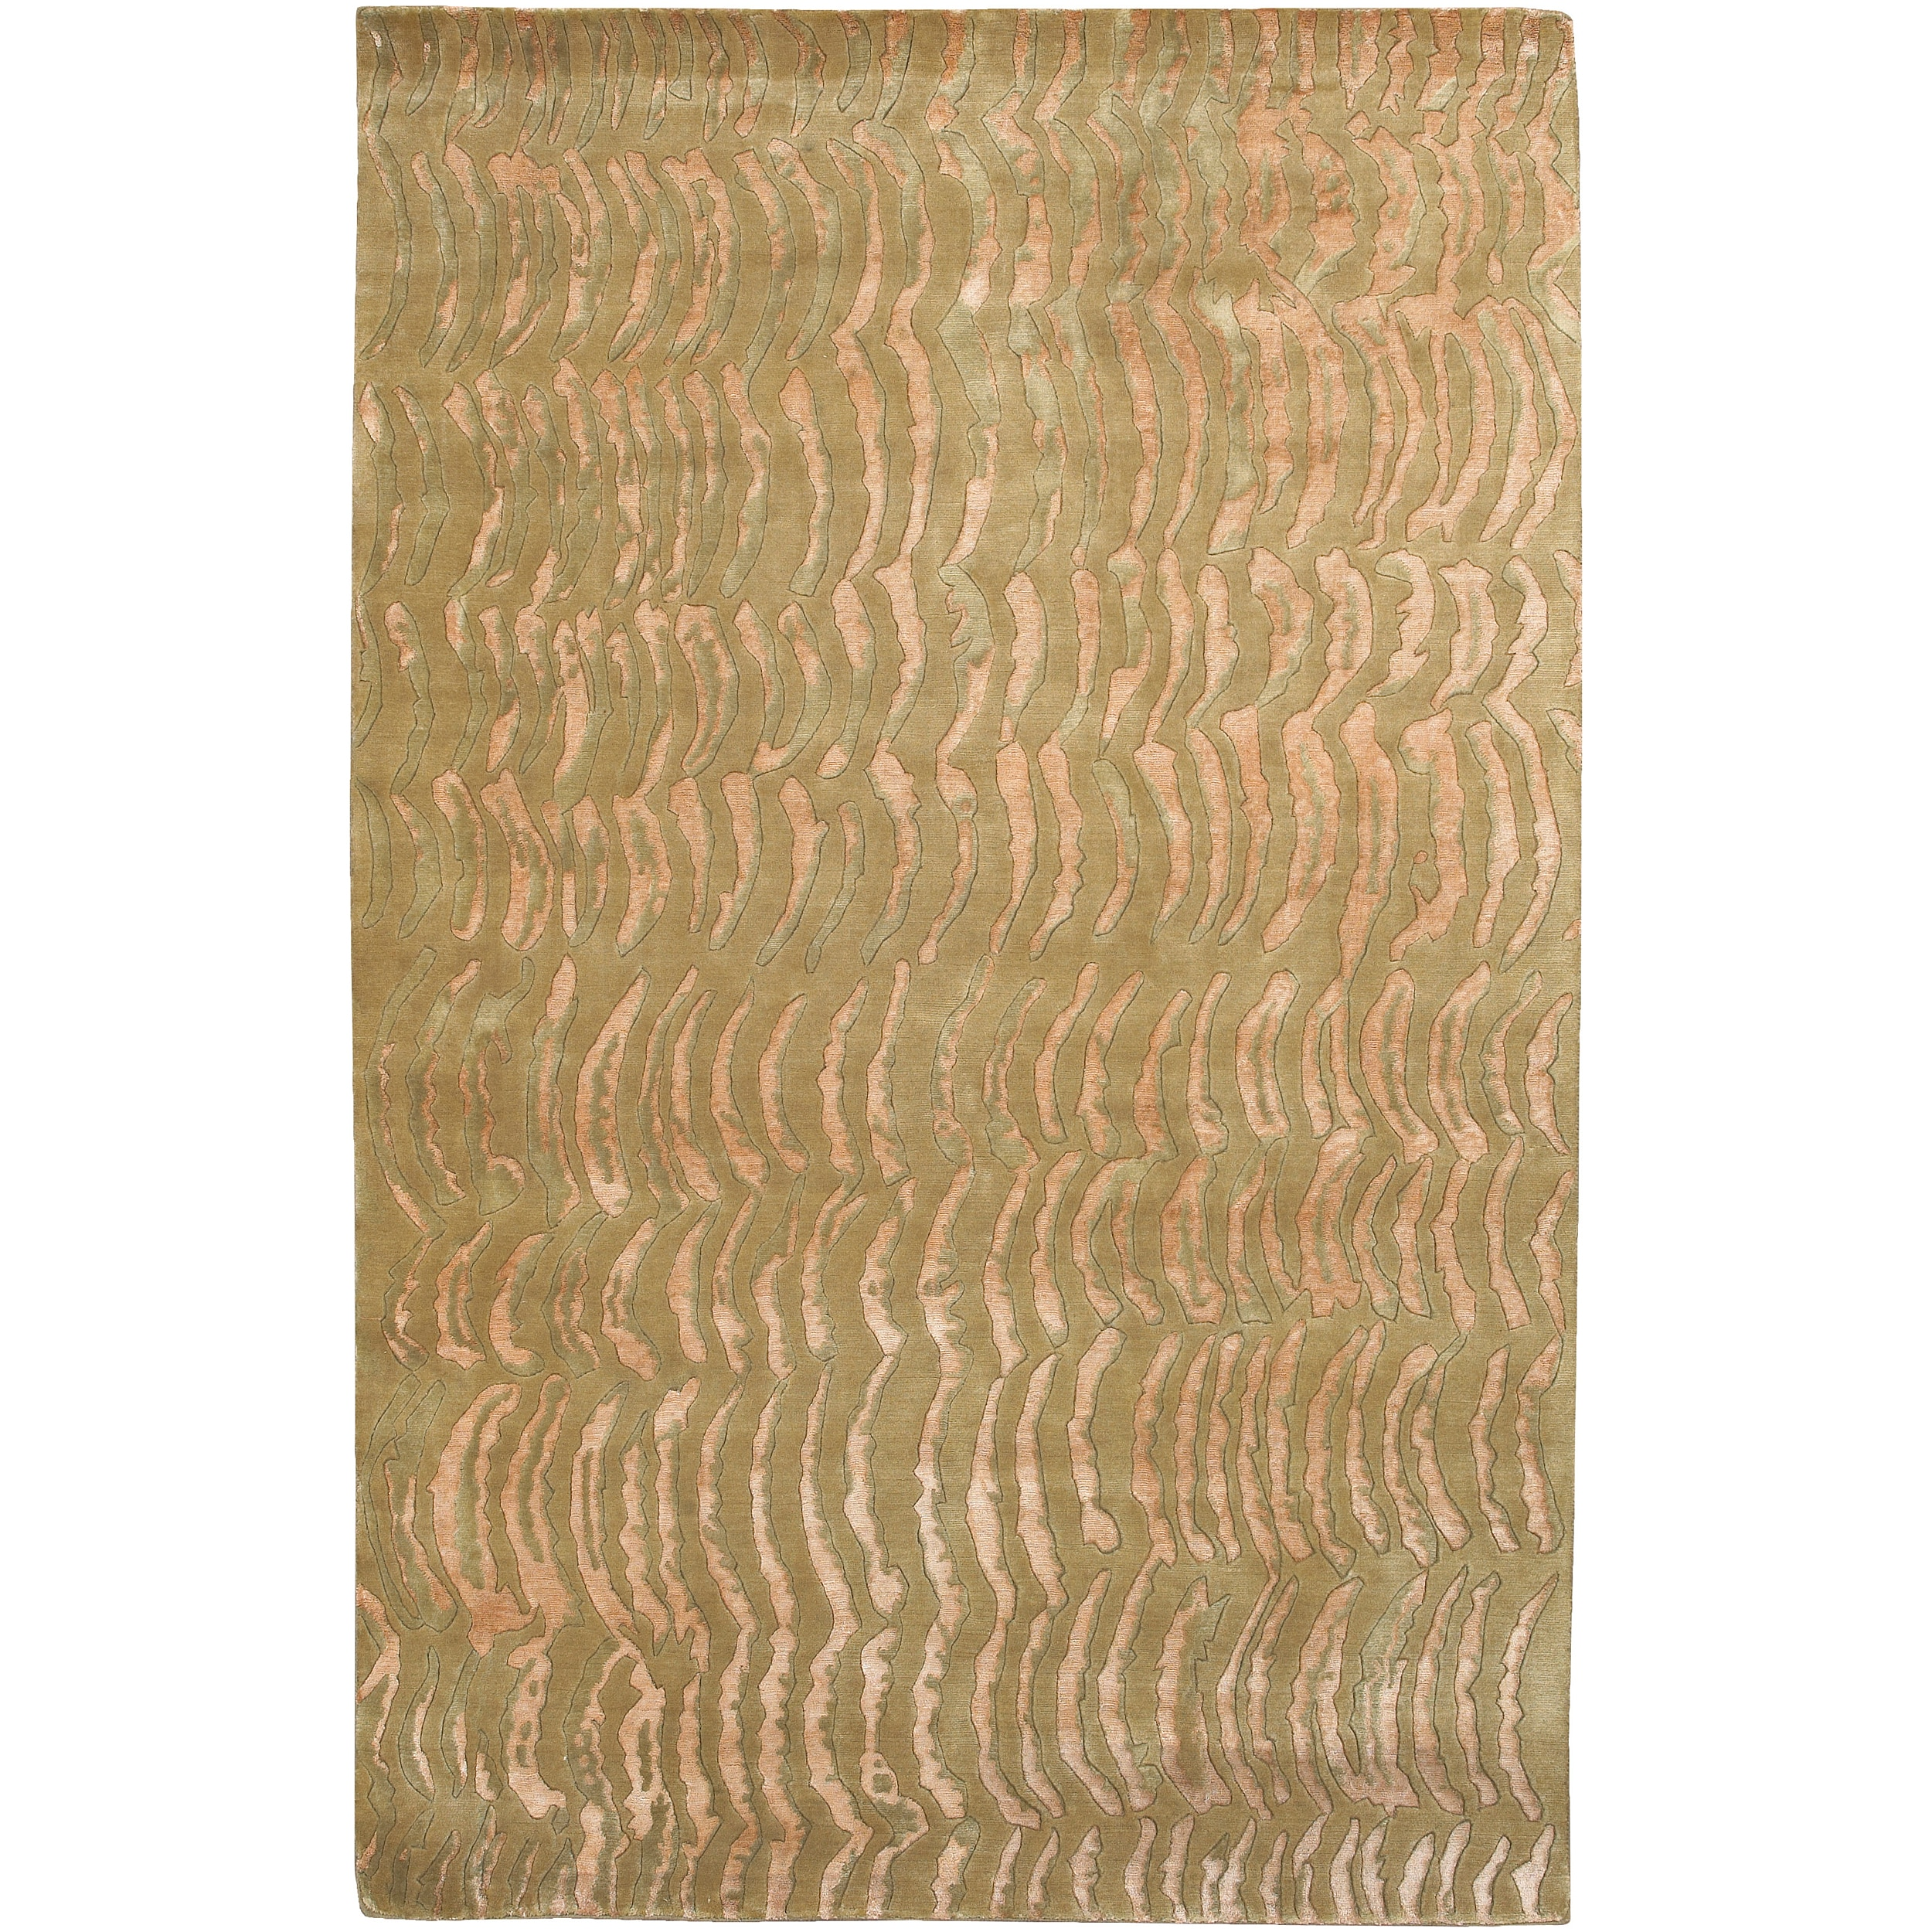 Hand-Knotted Multicolored Vilas Abstract-Design RecBeigegular Wool Rug (5' x 8')